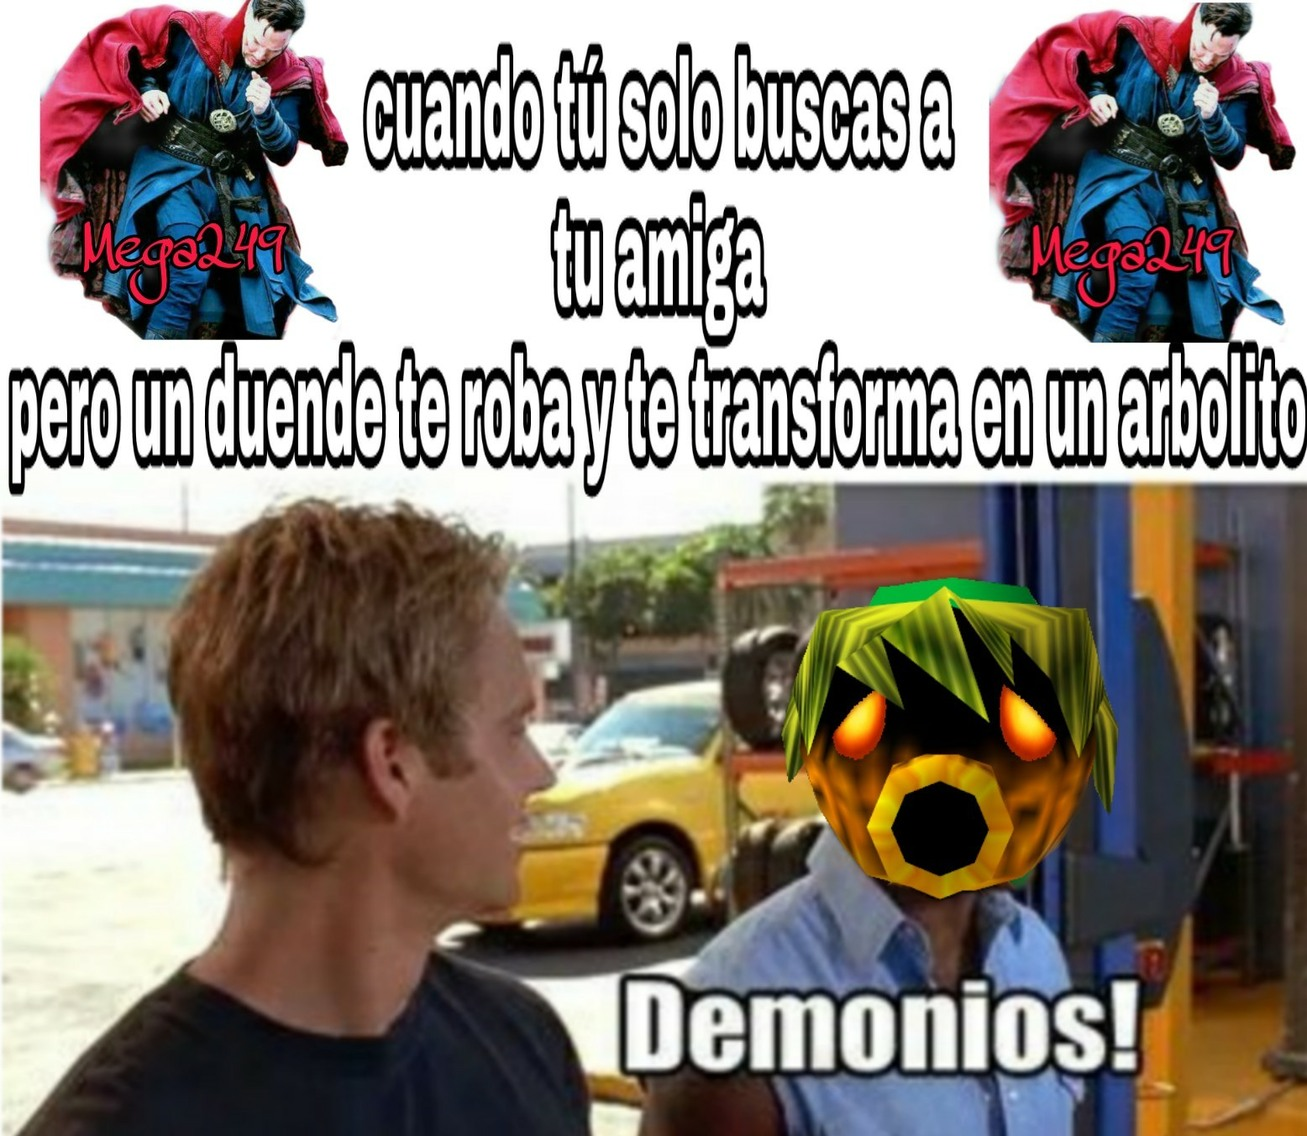 Te encontraste con un terrible destino verdad - meme